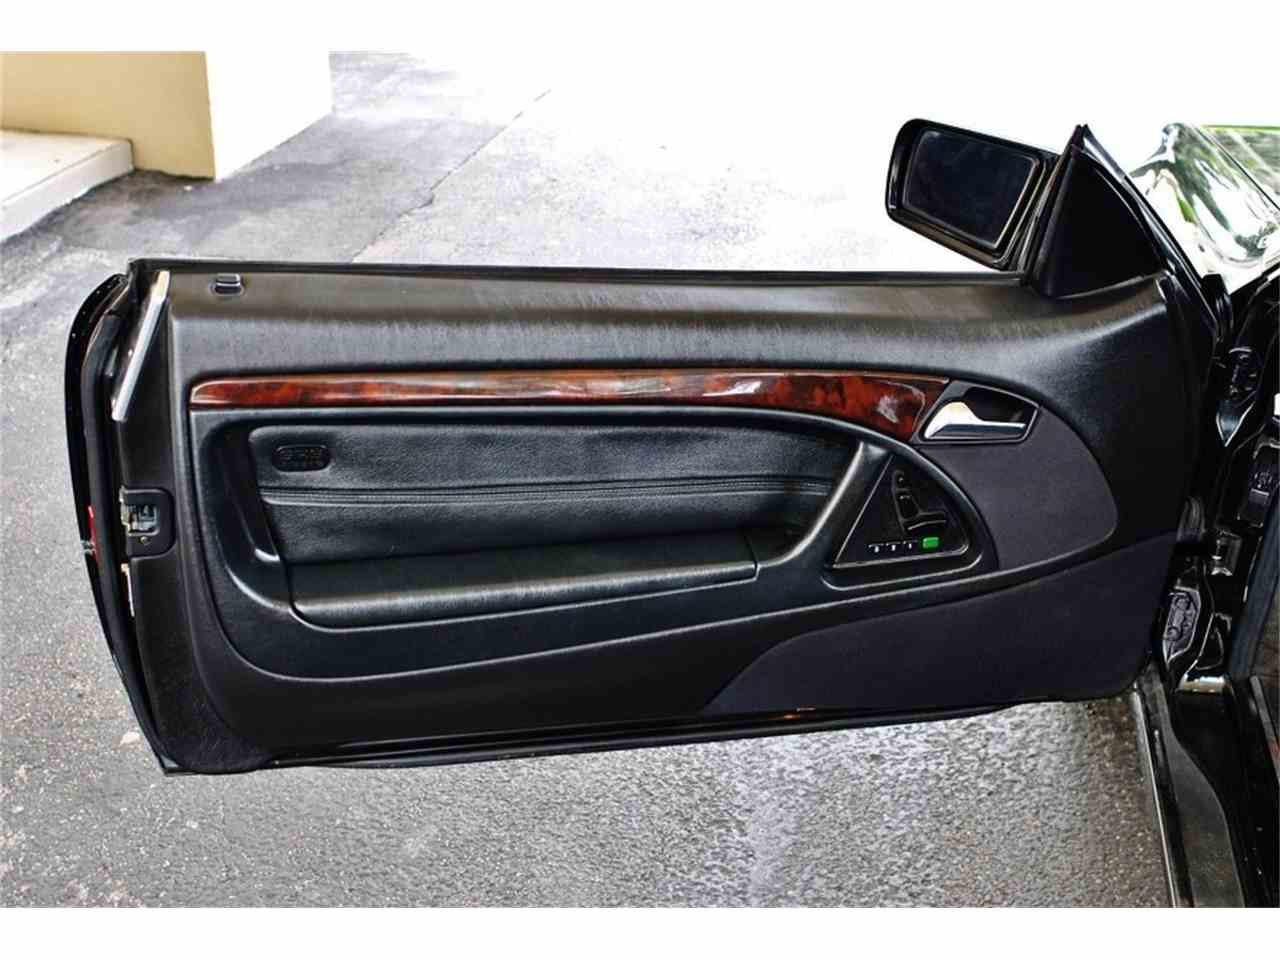 Large Picture of '97 Mercedes-Benz 500SL located in Lakeland Florida Auction Vehicle - MUD5